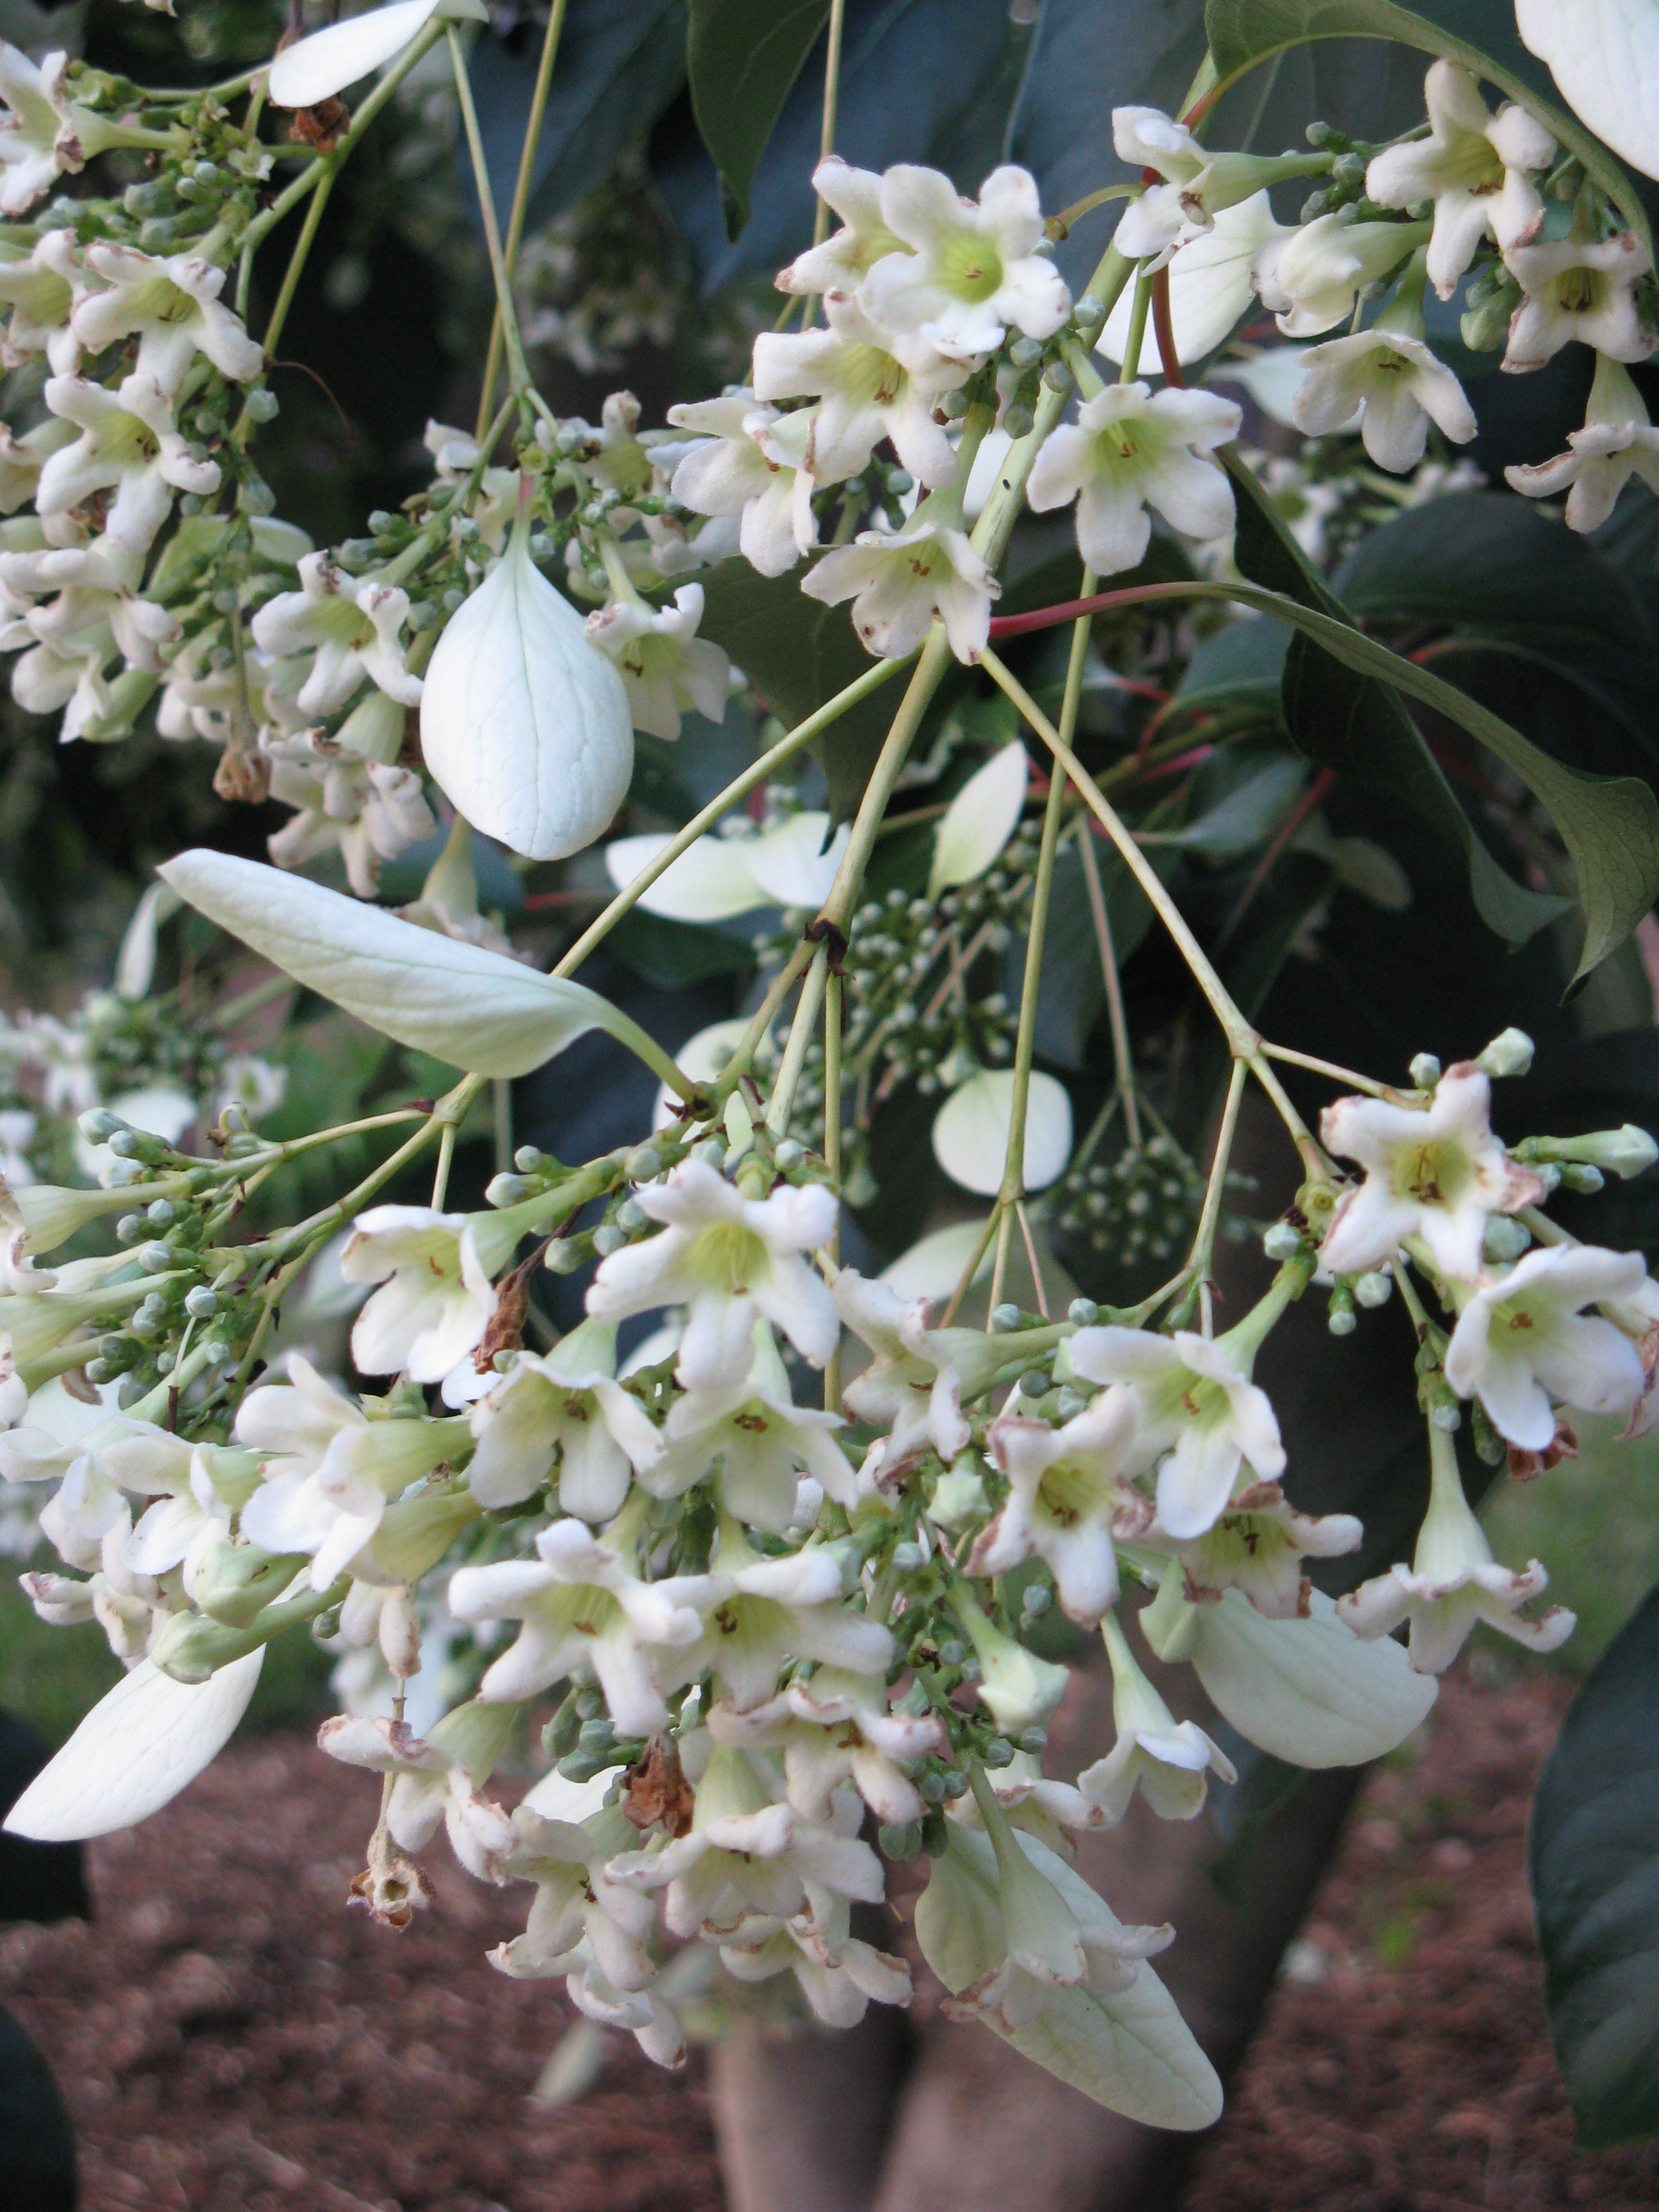 Fragrant, waxy bells are surrounded by large white bracts.